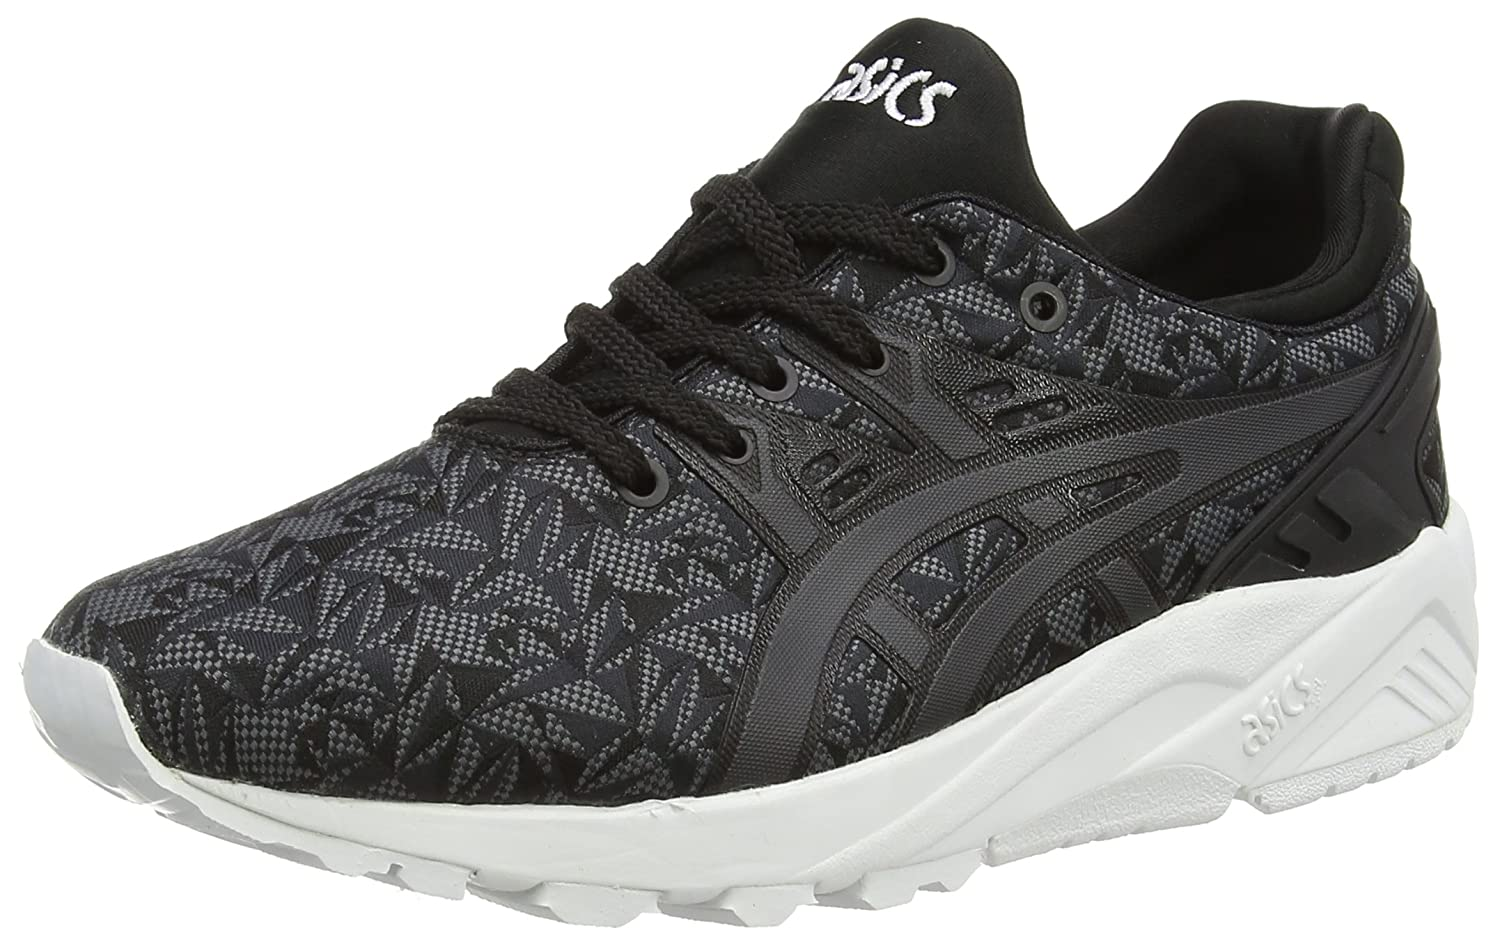 TALLA 46 EU. ASICS Gel-Kayano Trainer EVO, Zapatillas Unisex Adulto